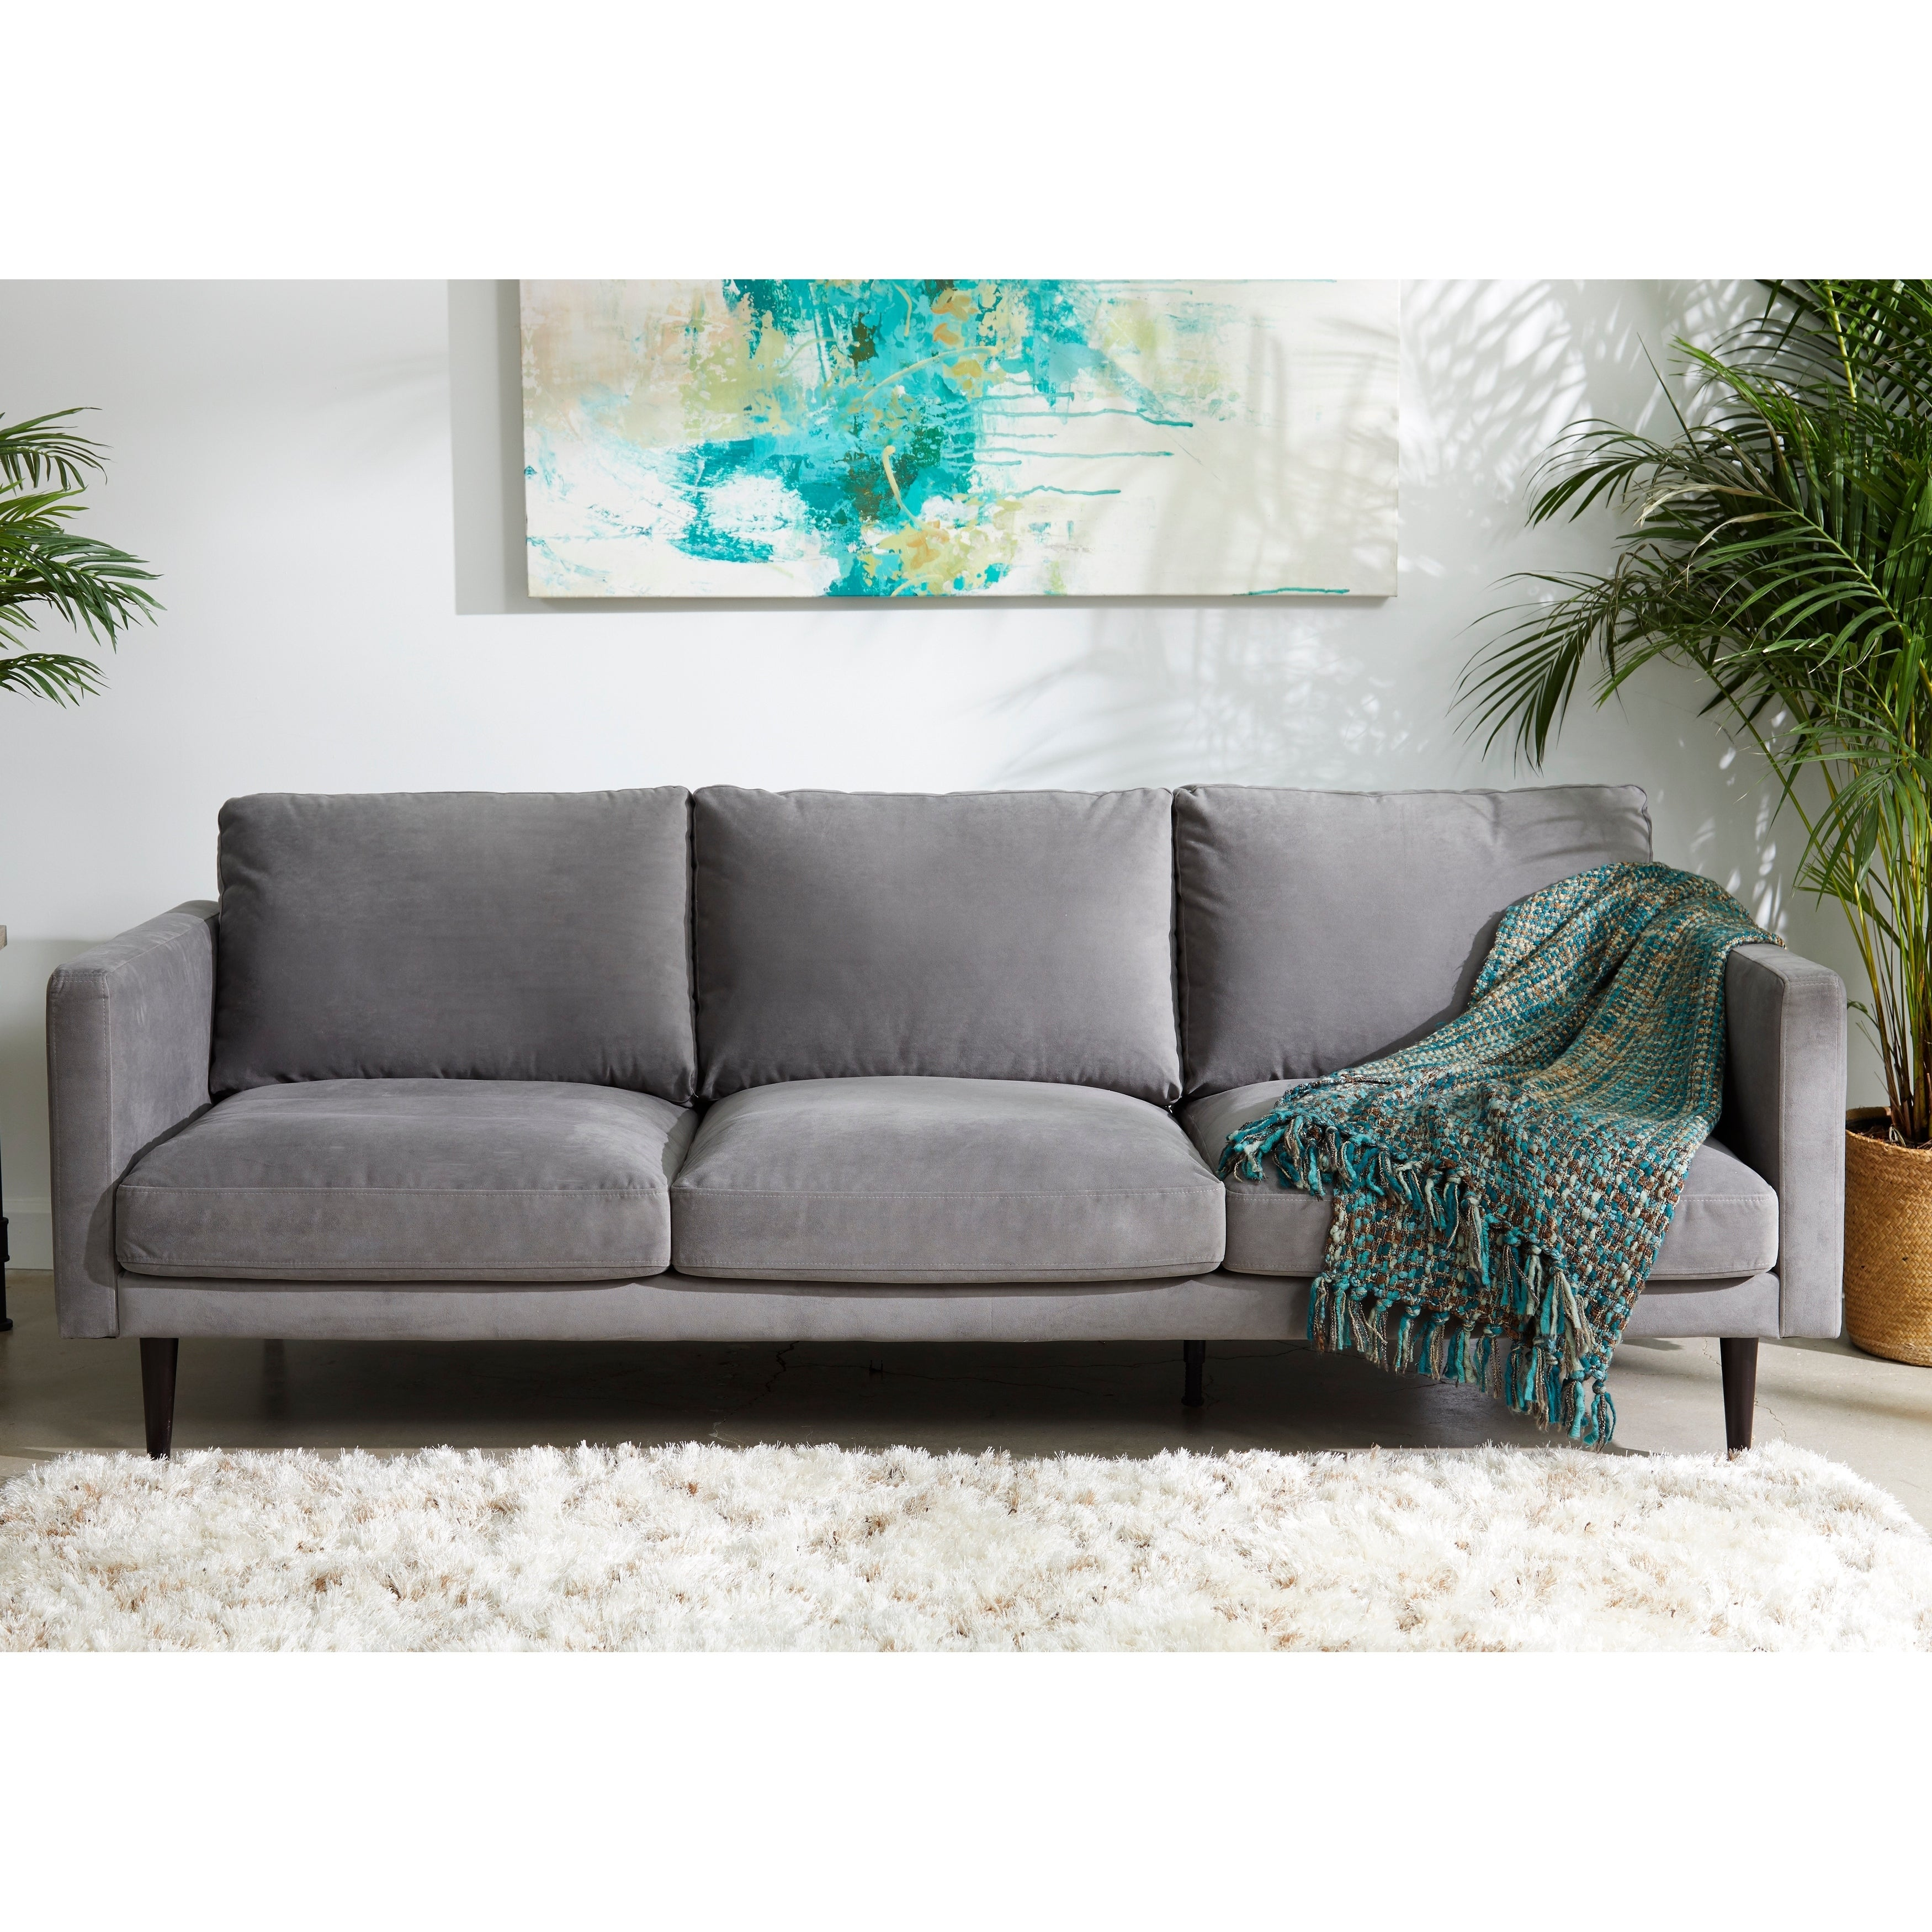 buy sofas couches clearance liquidation online at overstock rh overstock com sectional sofas on clearance sofas on clearance in stores